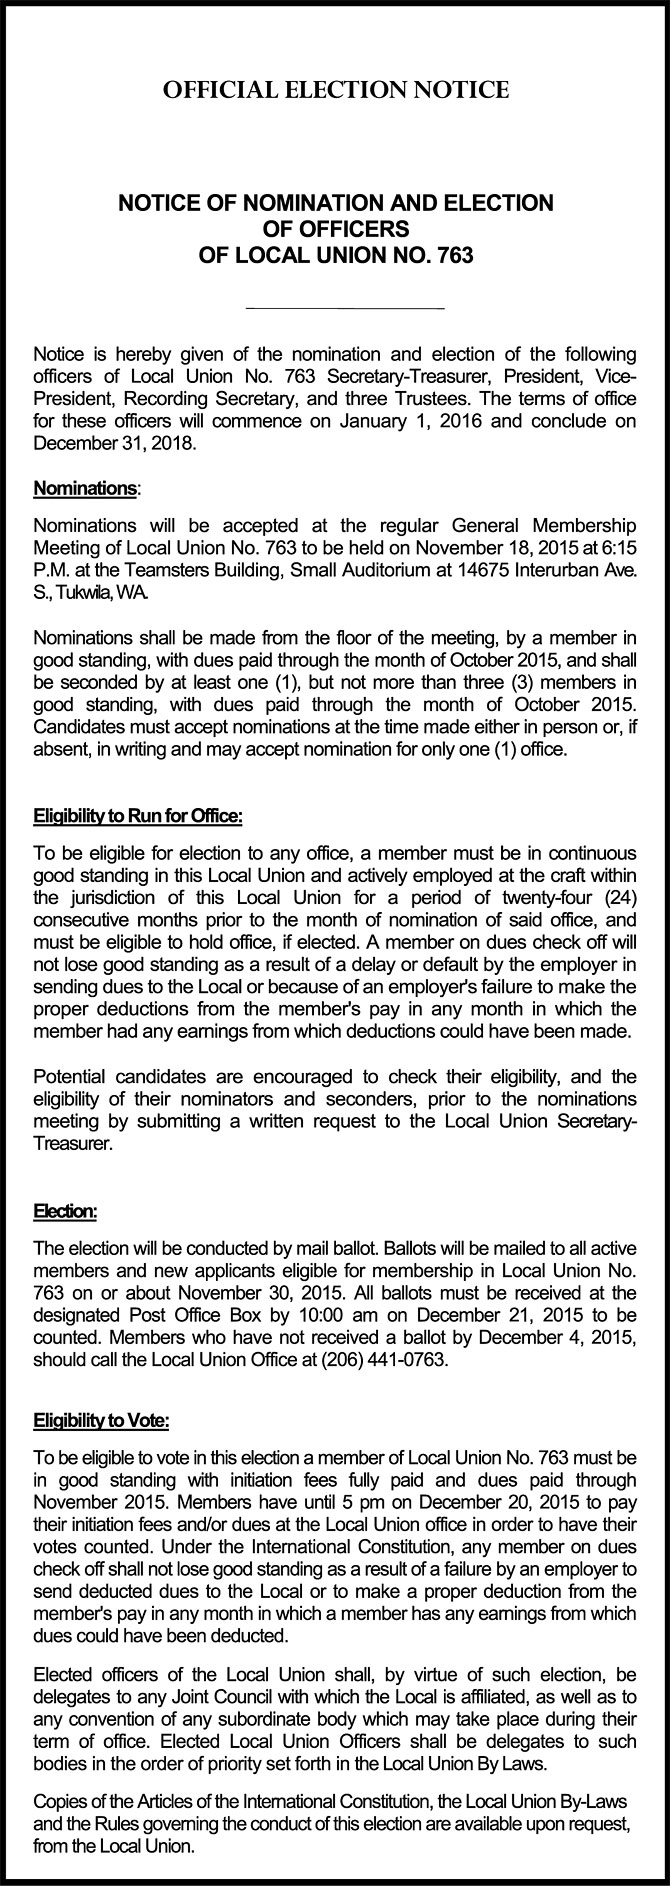 Download the Local Union Nomination and Election Notices from Joint Council No. 28